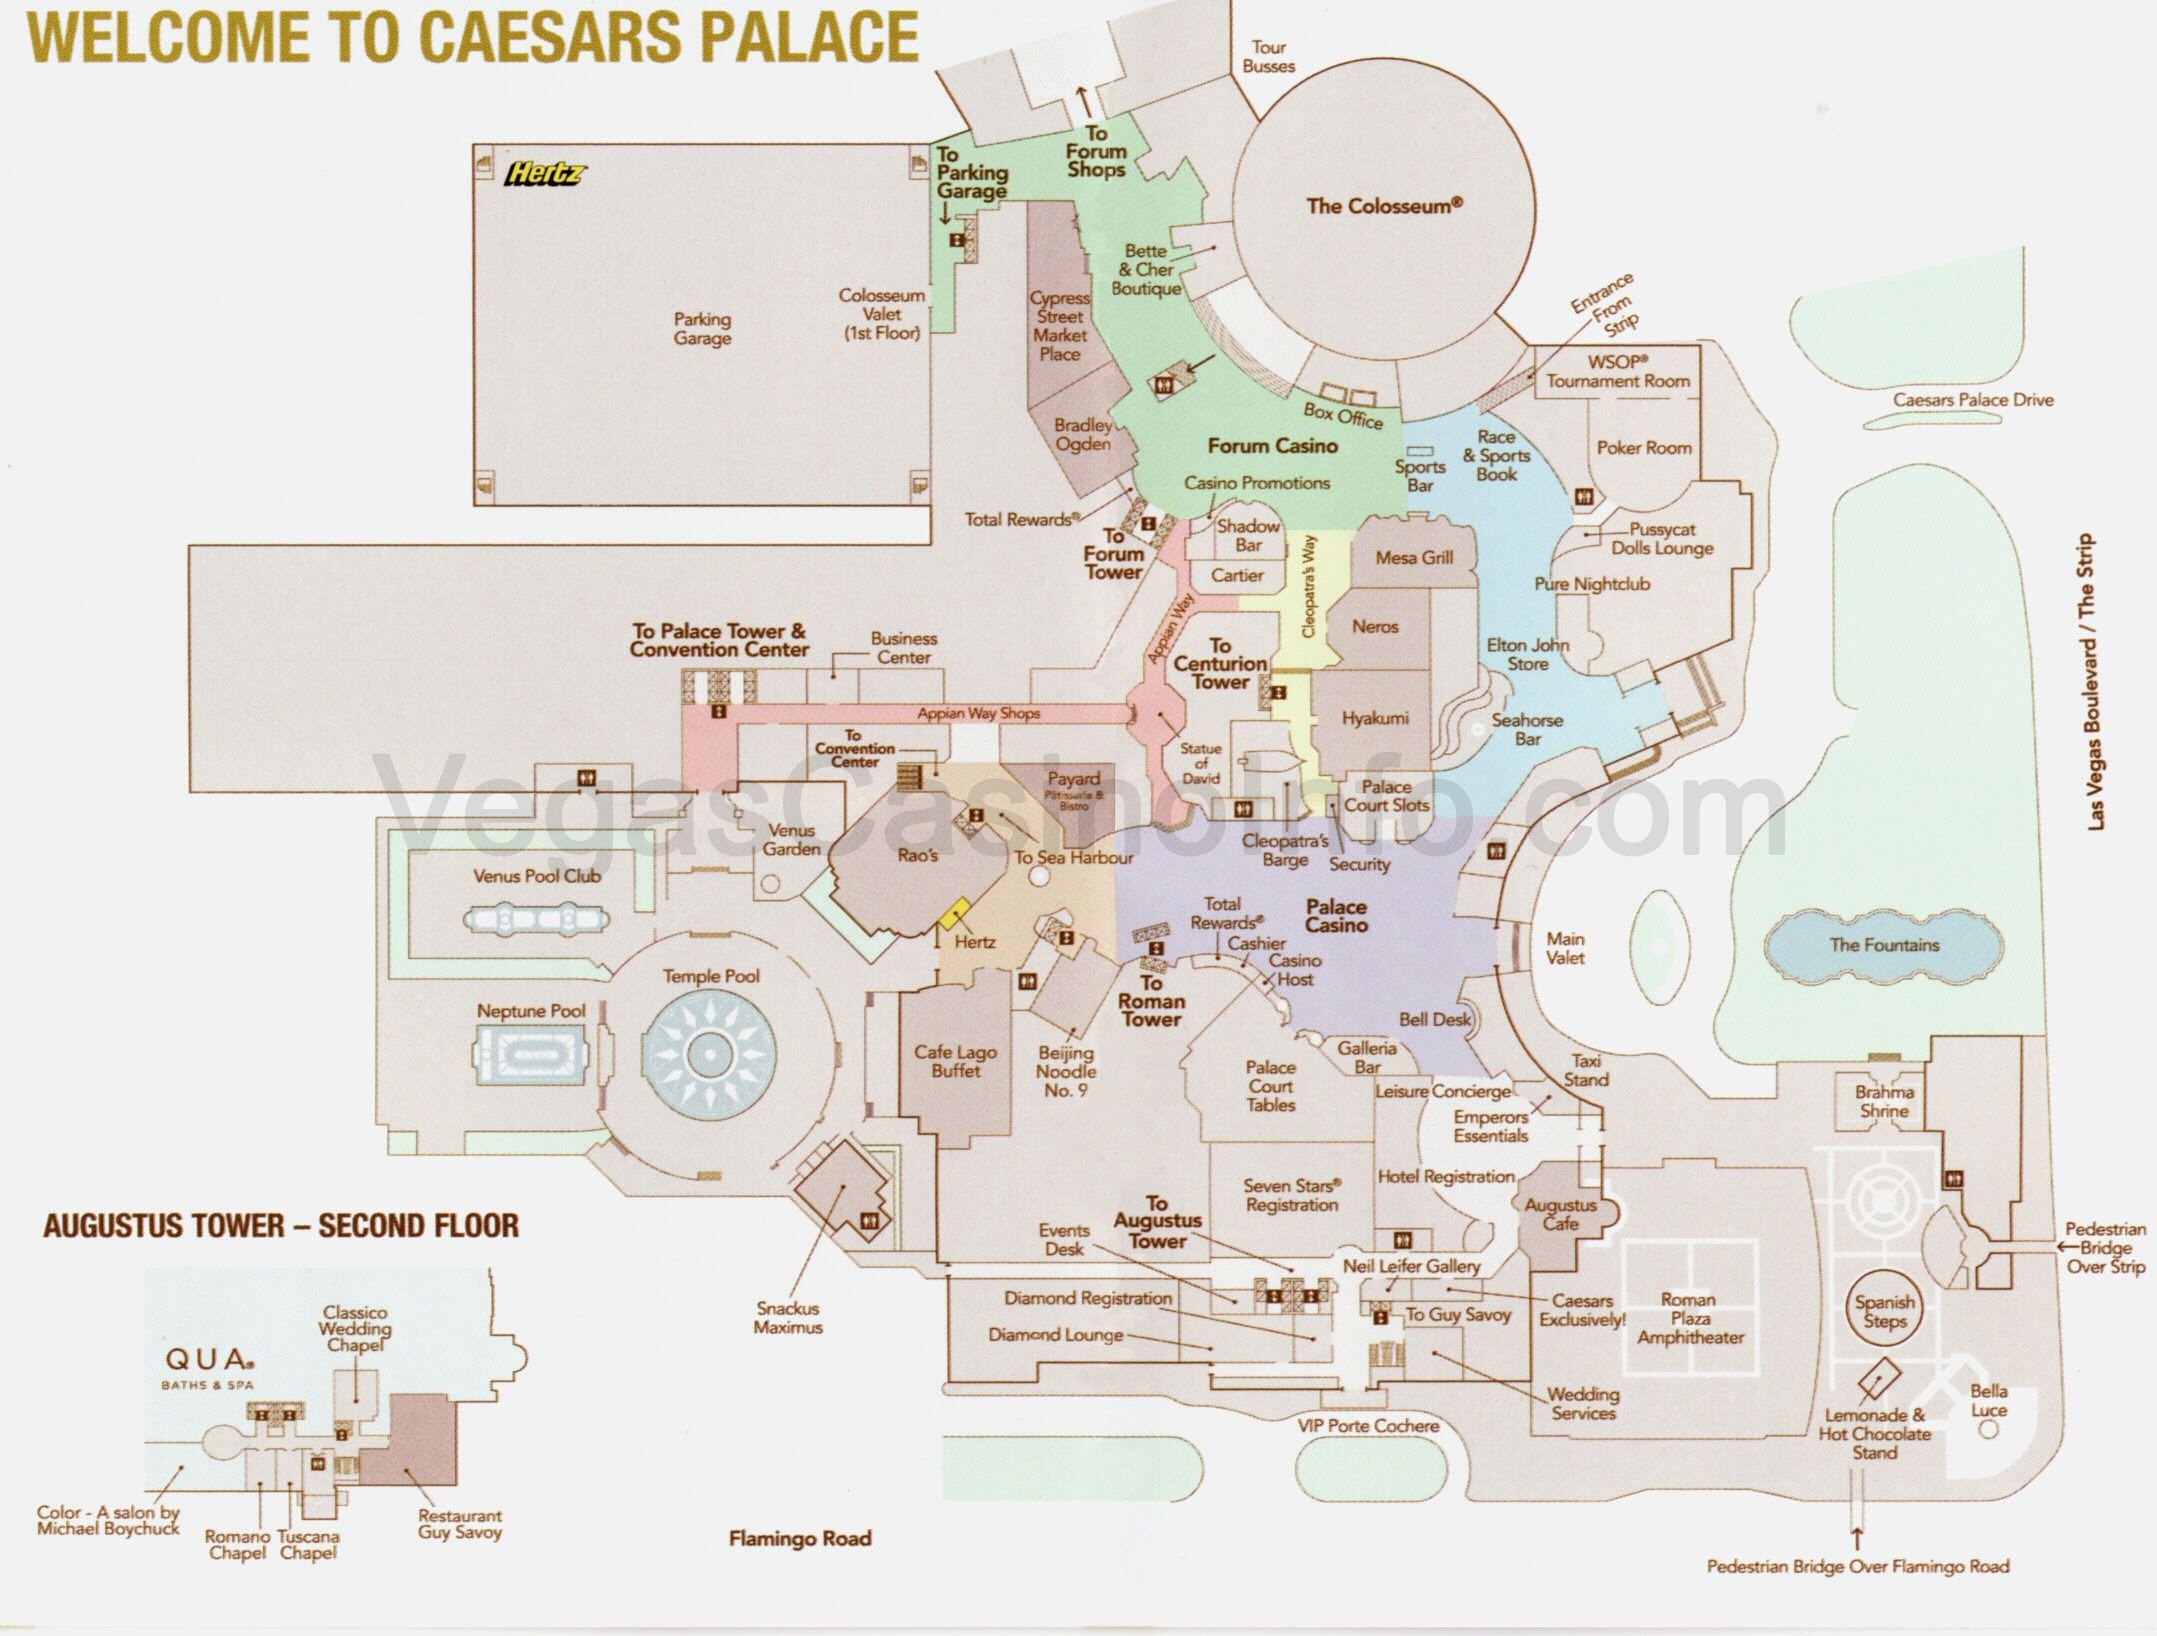 Map Of Caesars Palace Ceasar's Palace Indoor MAP | Travel in 2019 | Las vegas map, Las